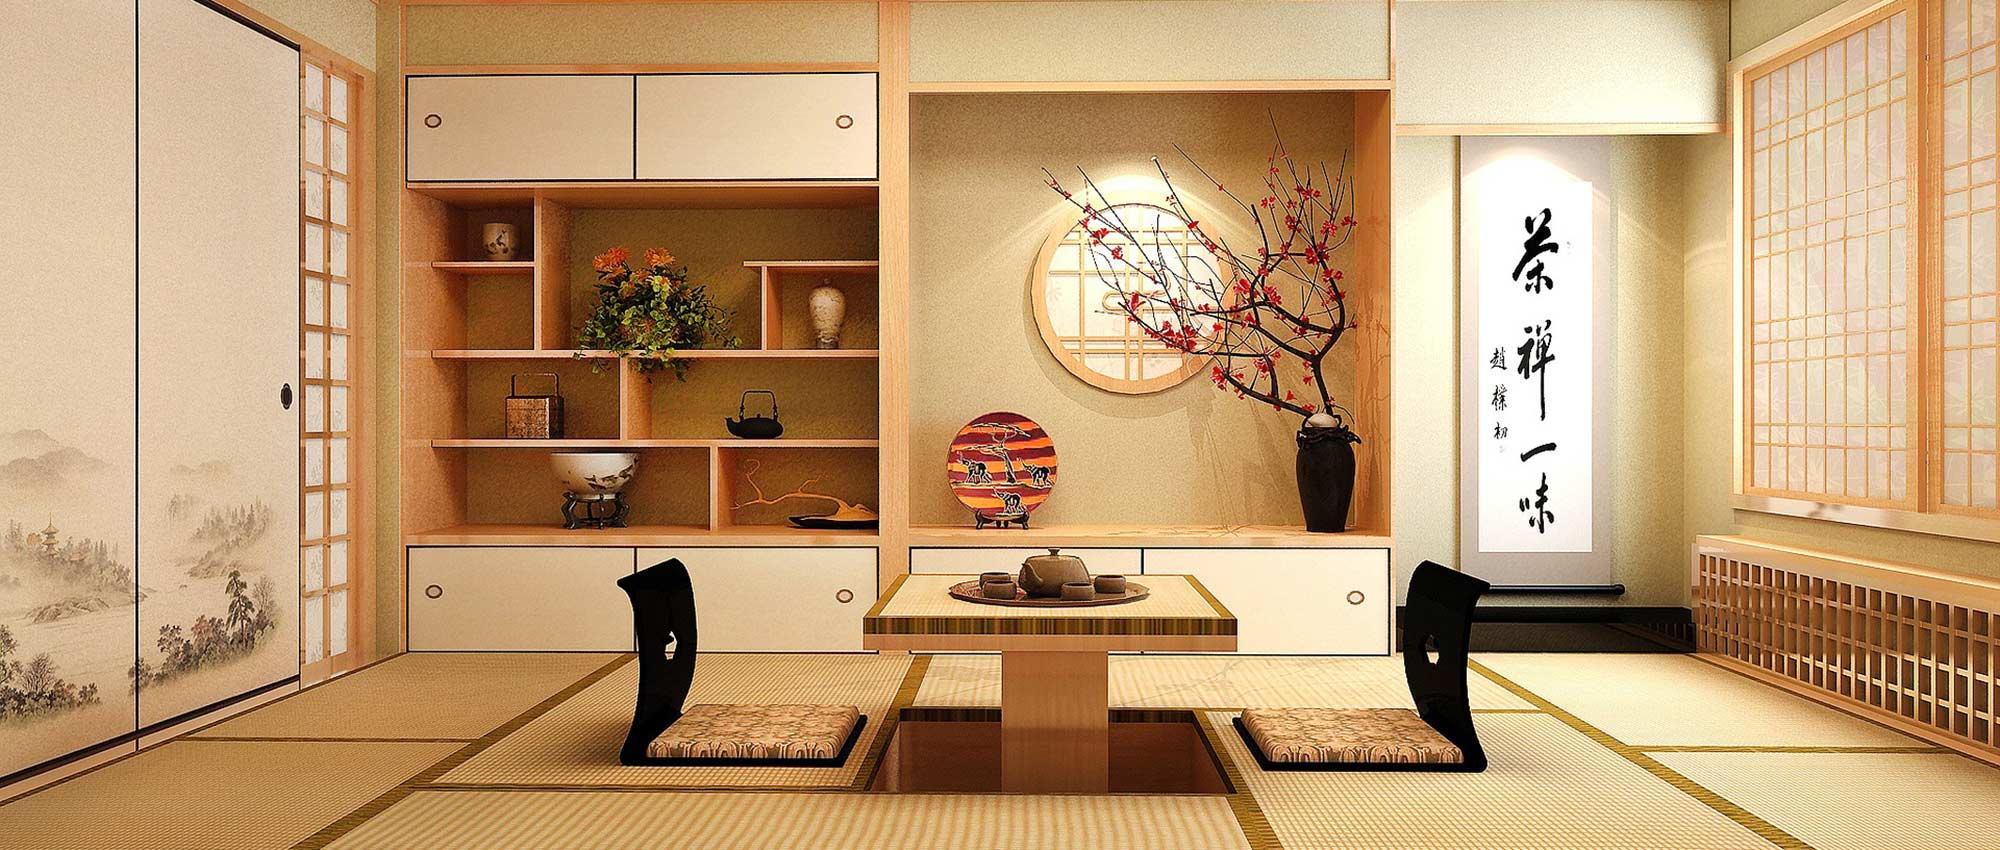 There Are People Who Adore Tatami And Wouldnu0027t Live Without It, But There  Are Just As Many Who Avoid It At All Costs. When Searching For A Home In  Japan, ...